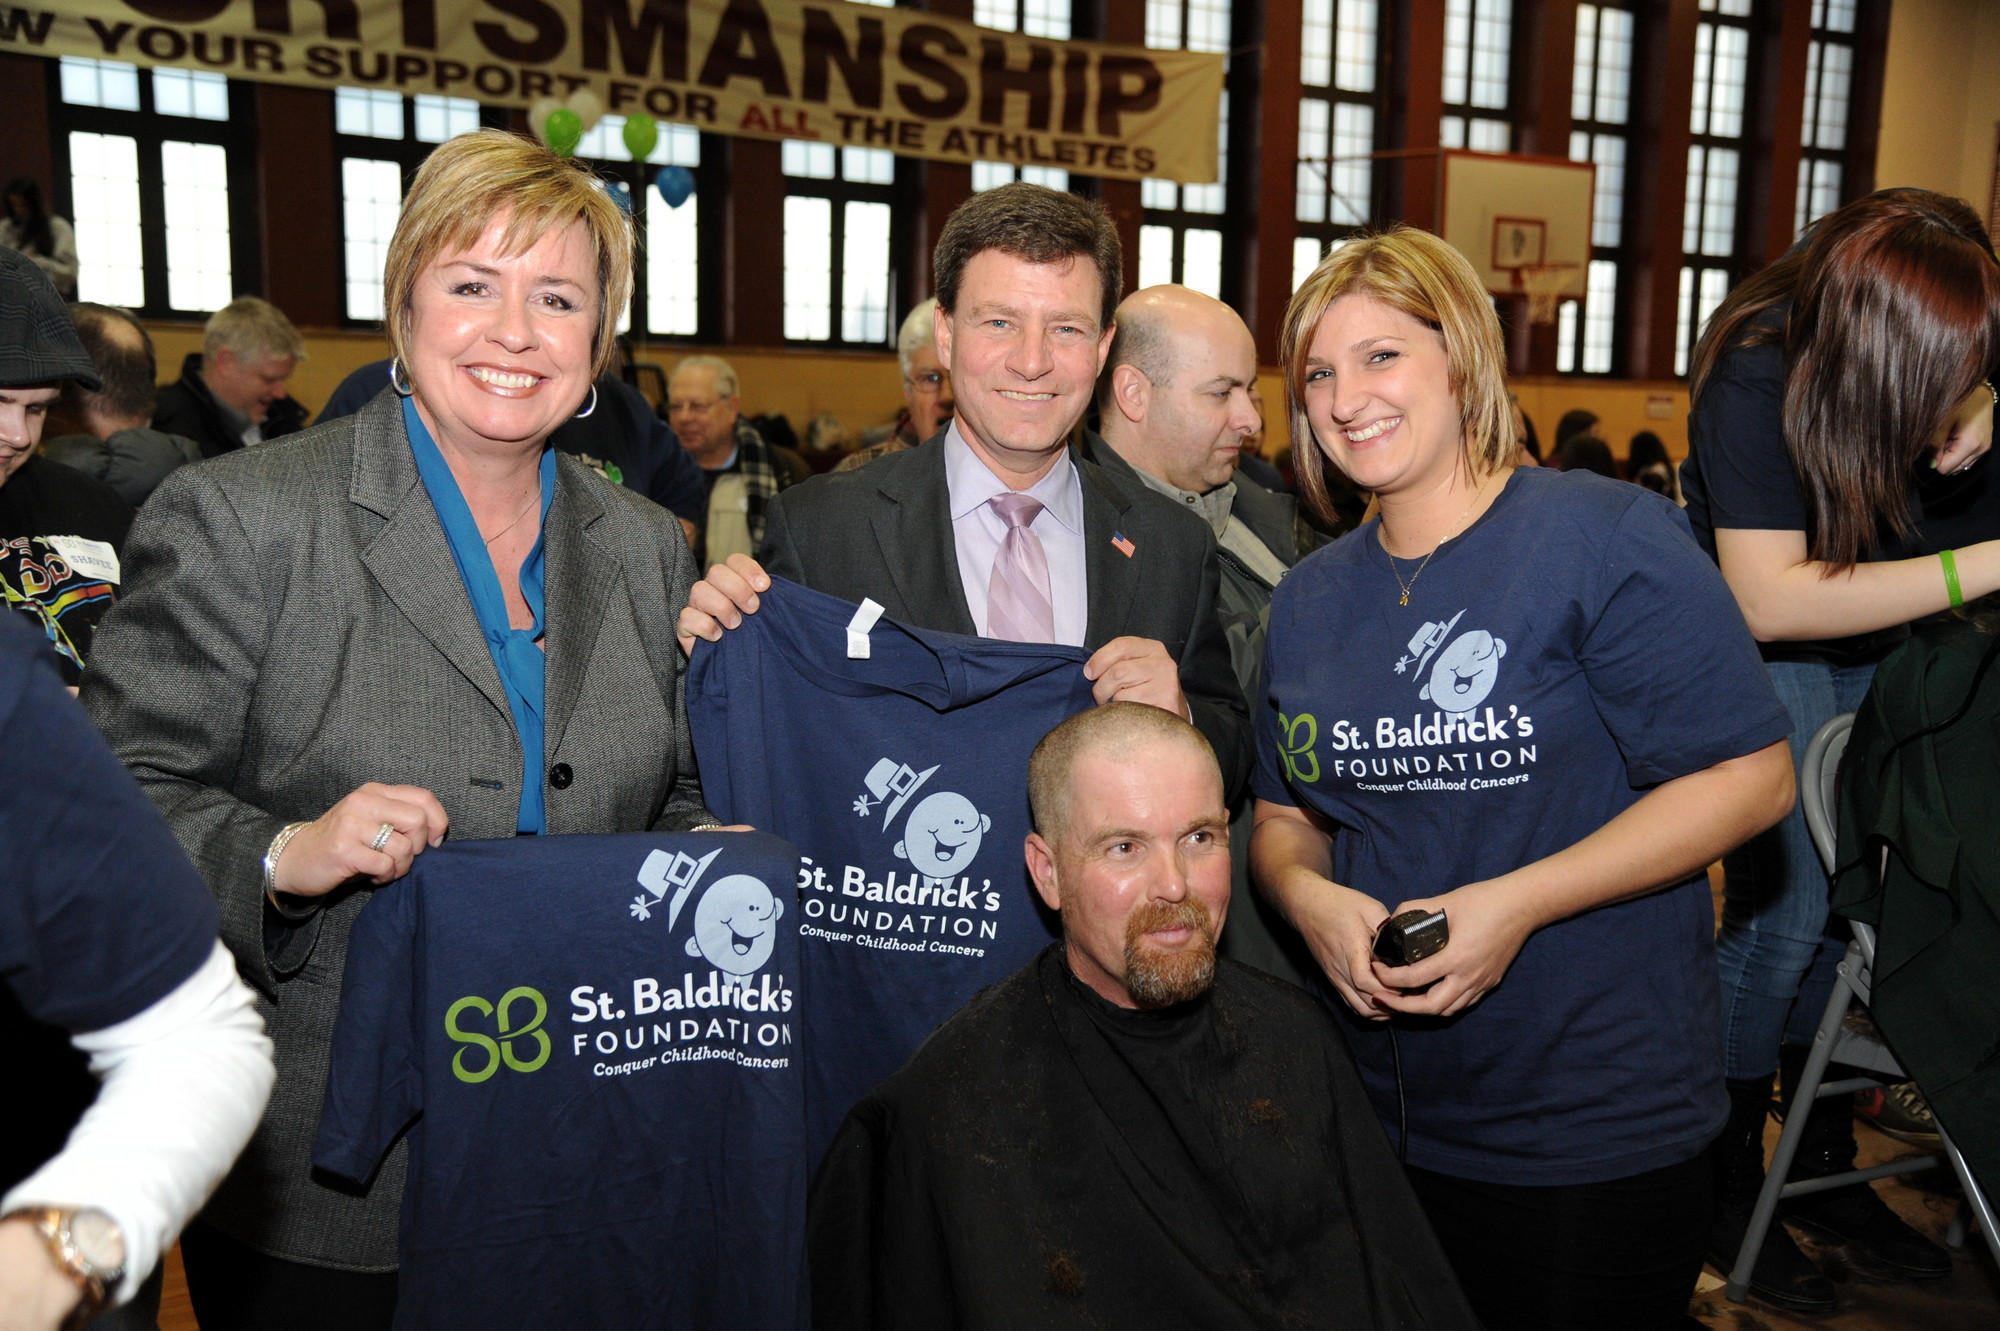 Town of Hempstead Supervisor Kate Murray and Nassau County Legislator Dave Denenberg looked on while Christin Castellvi shaved Steven Maher's head